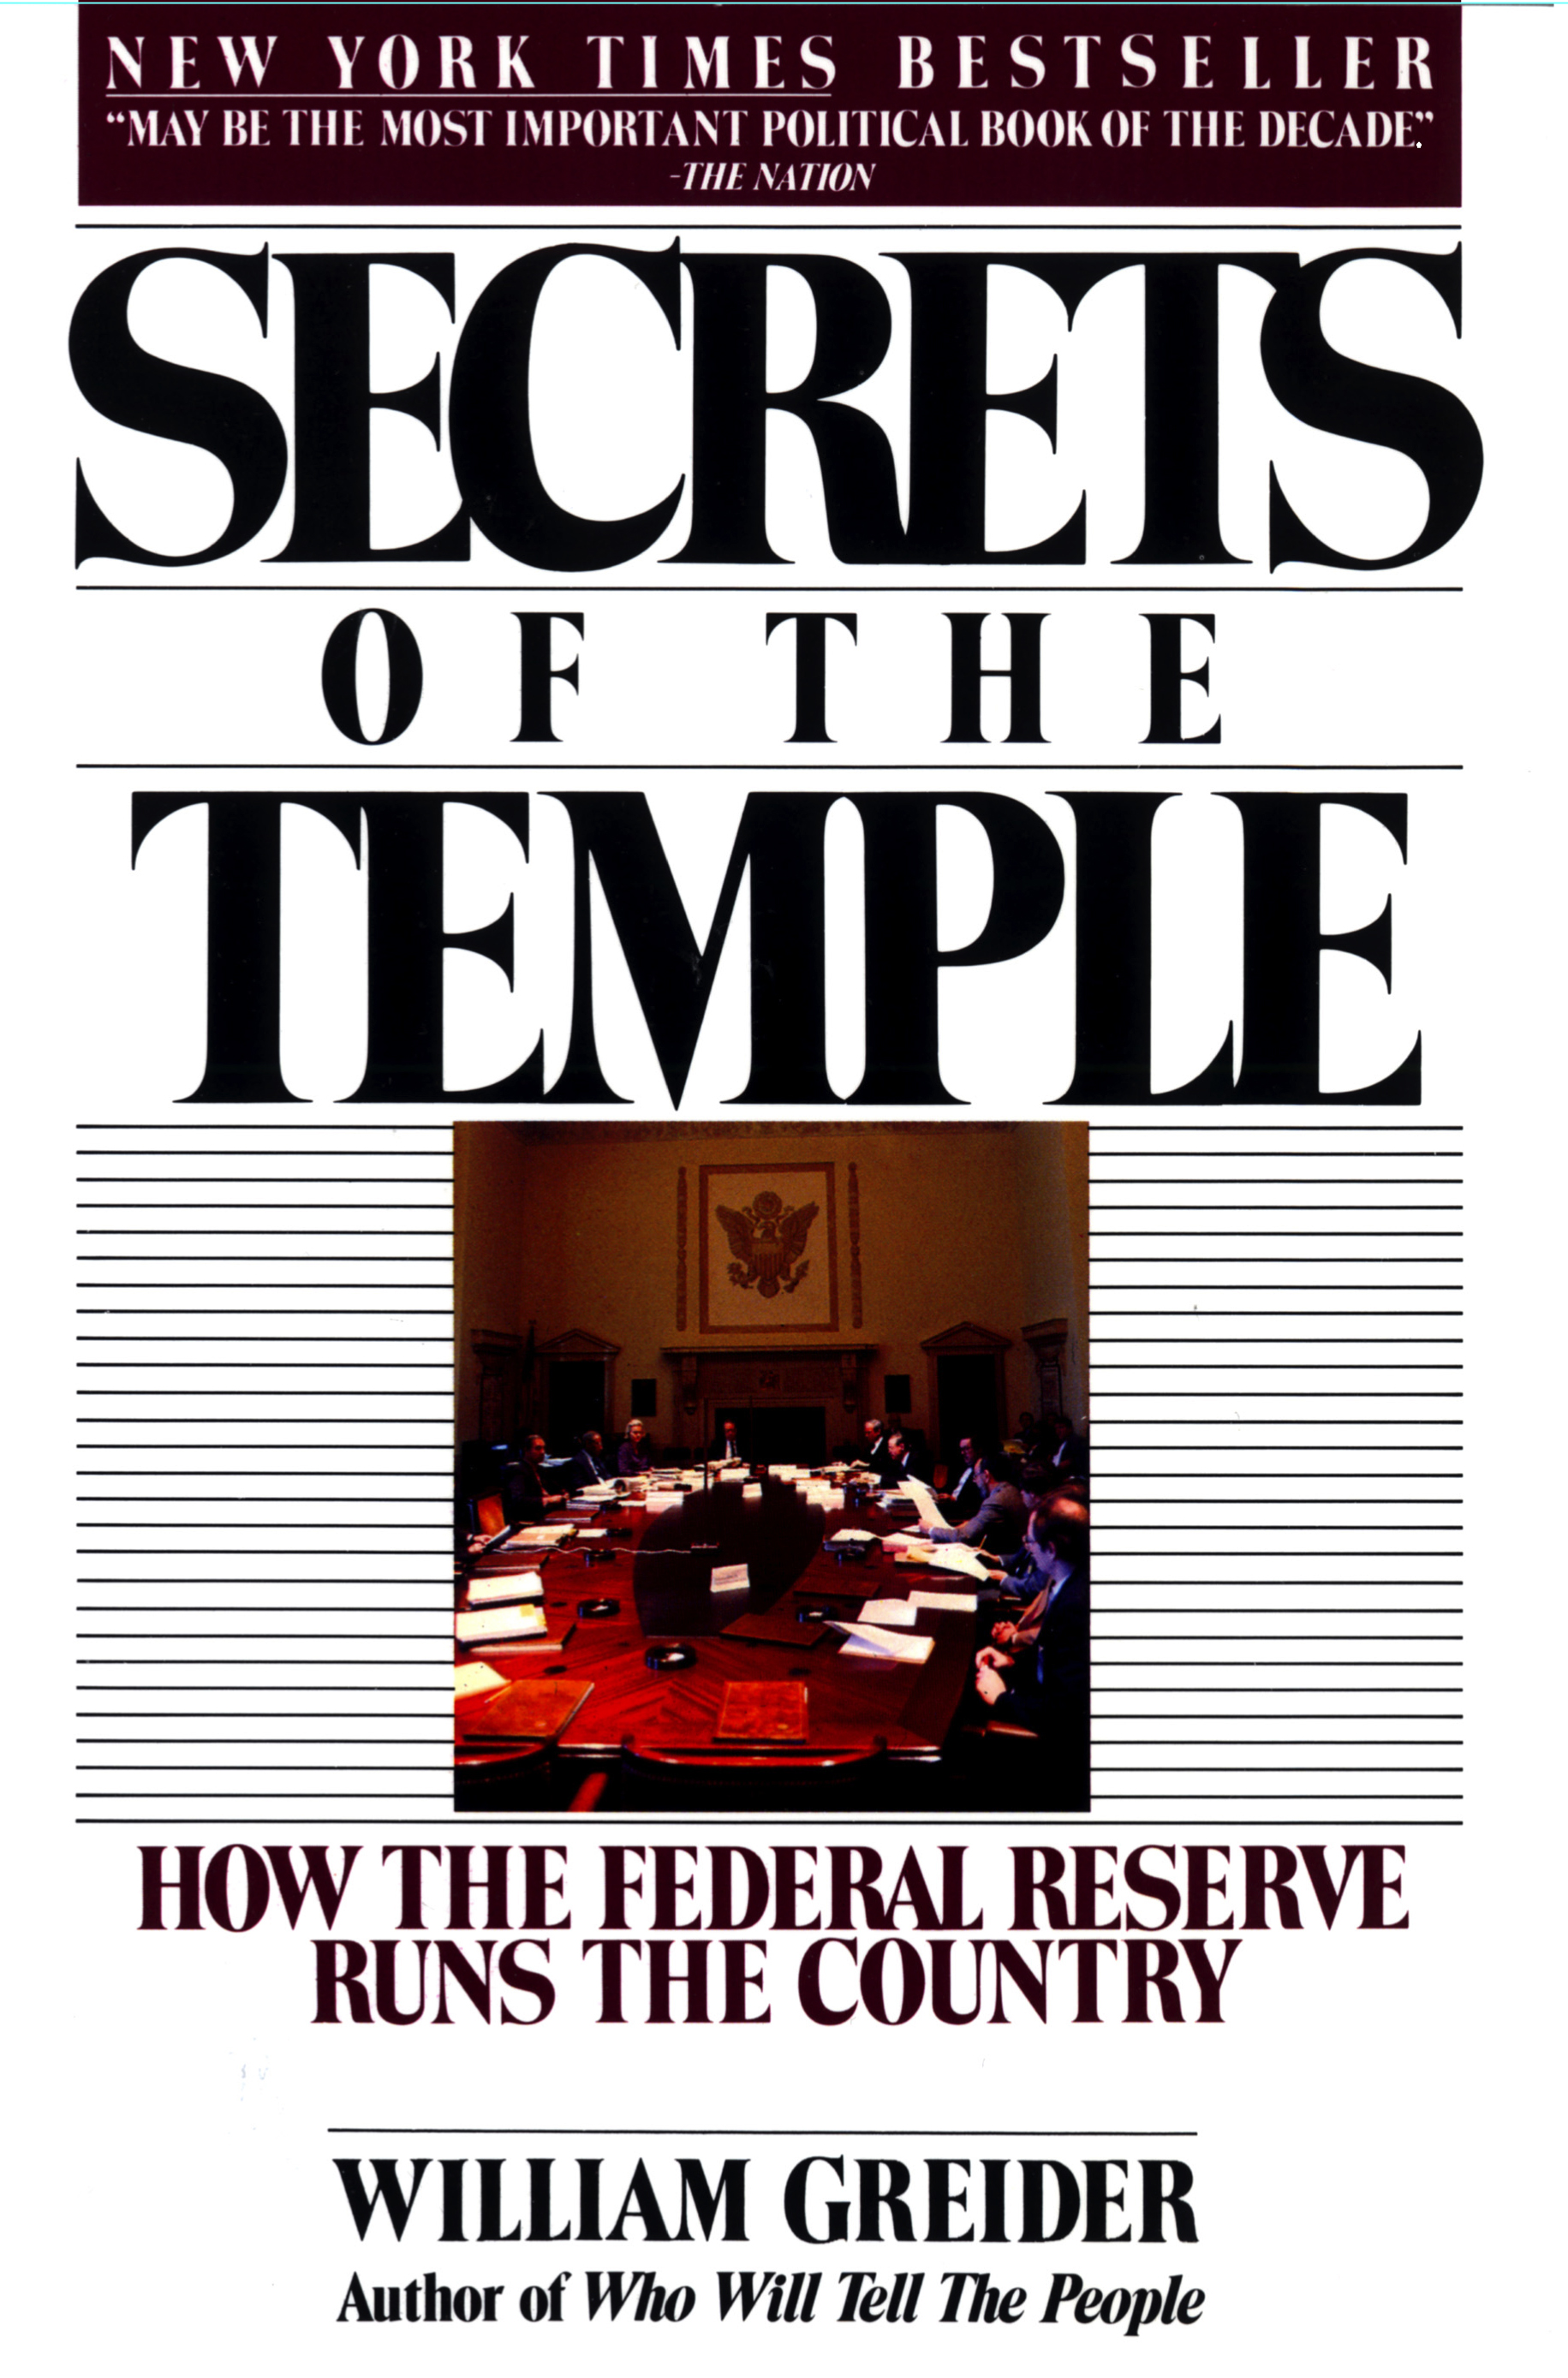 a literary analysis of from secrets of the temple by william greider